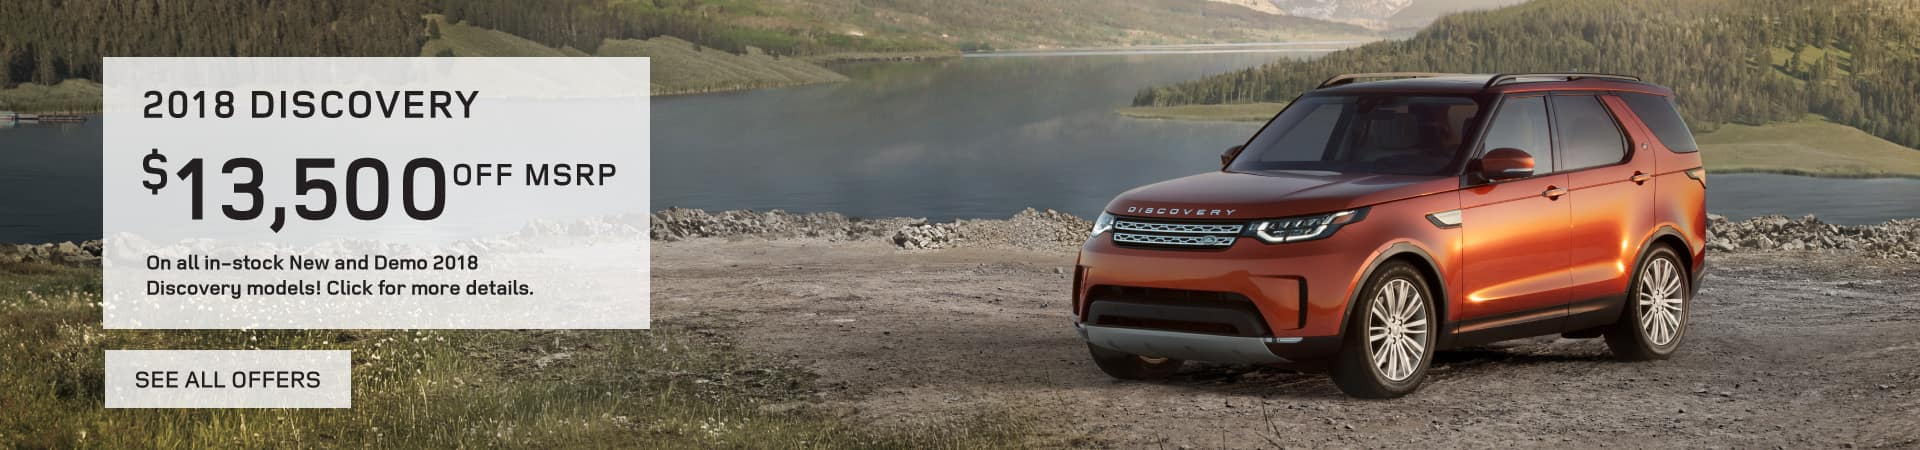 Autobahn Land Rover - 2018 Discovery Models $13,500 off MSRP